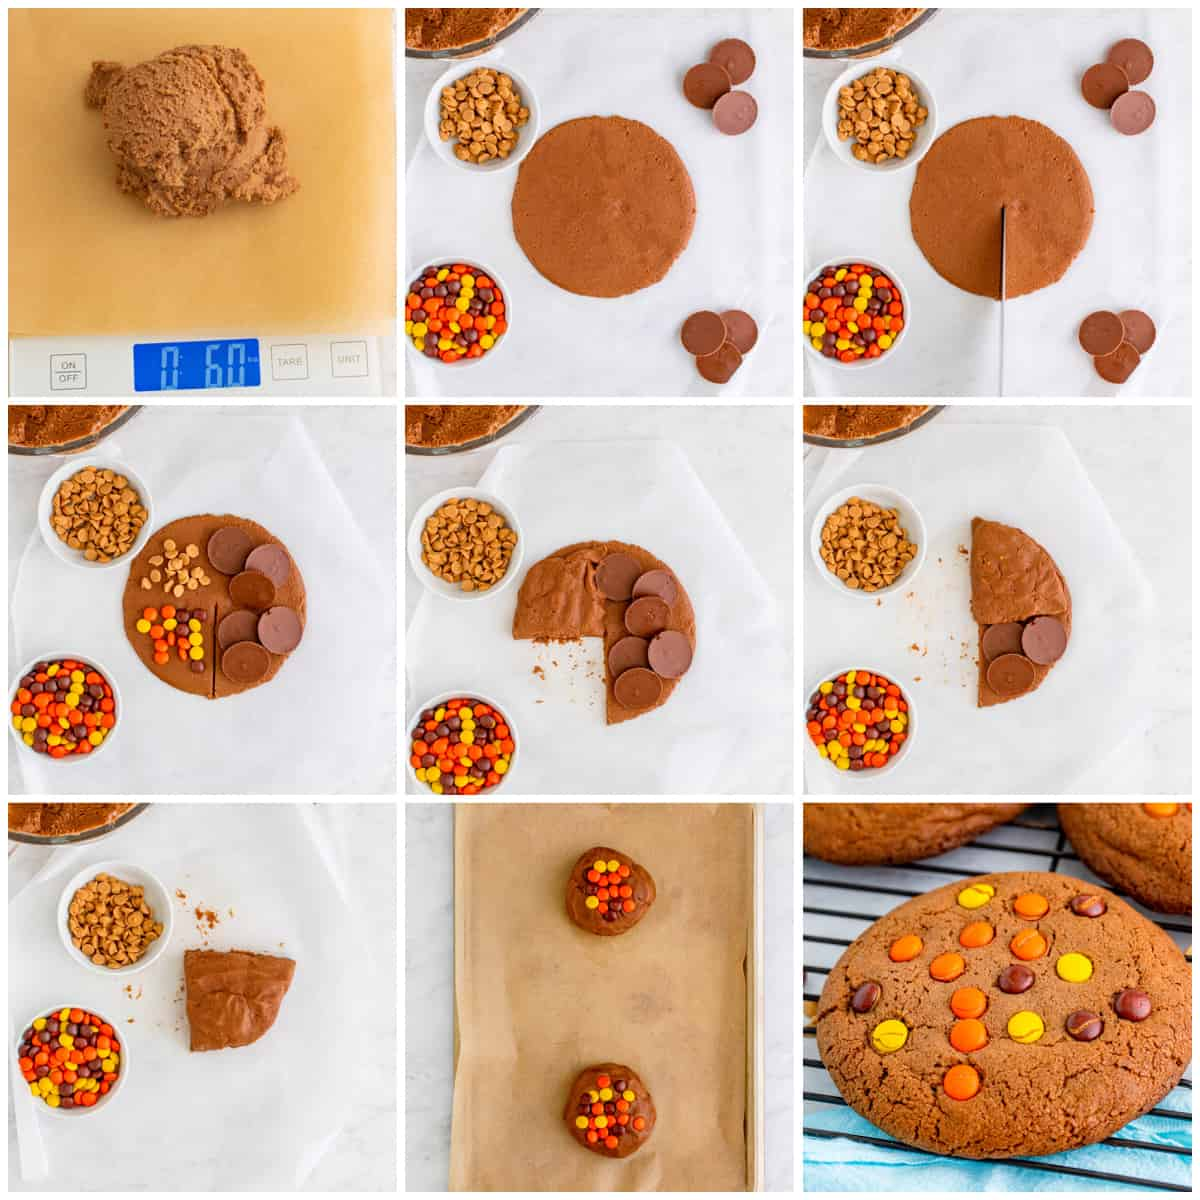 Step by step photos on photo to make a Reese's Cookie Wrap